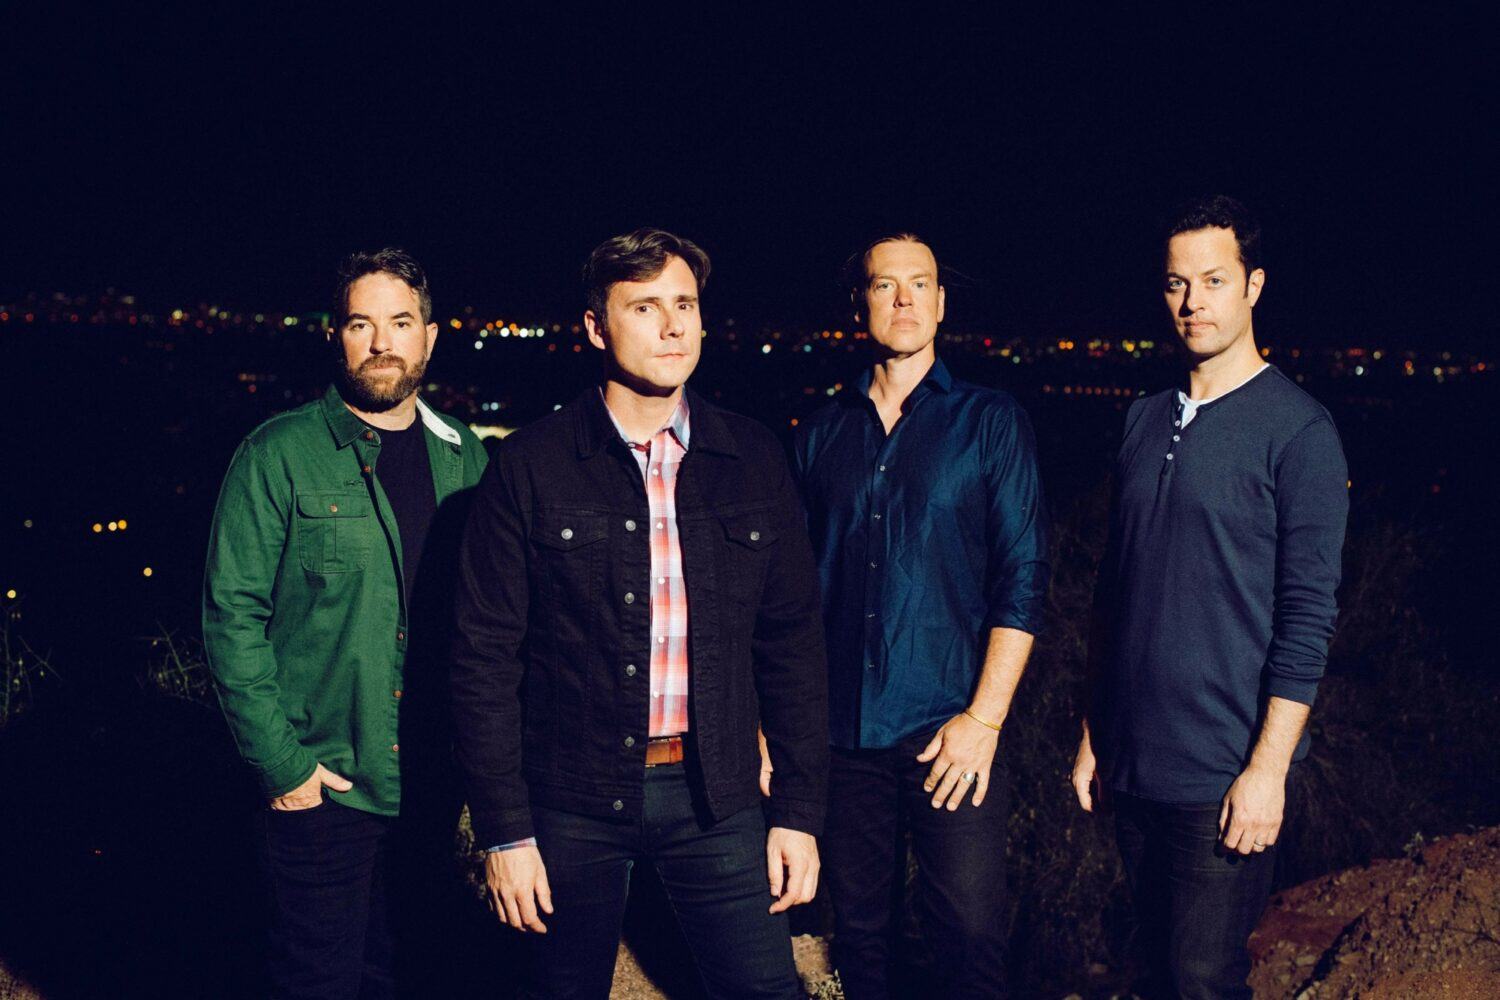 Jimmy Eat World talk through new album 'Surviving'